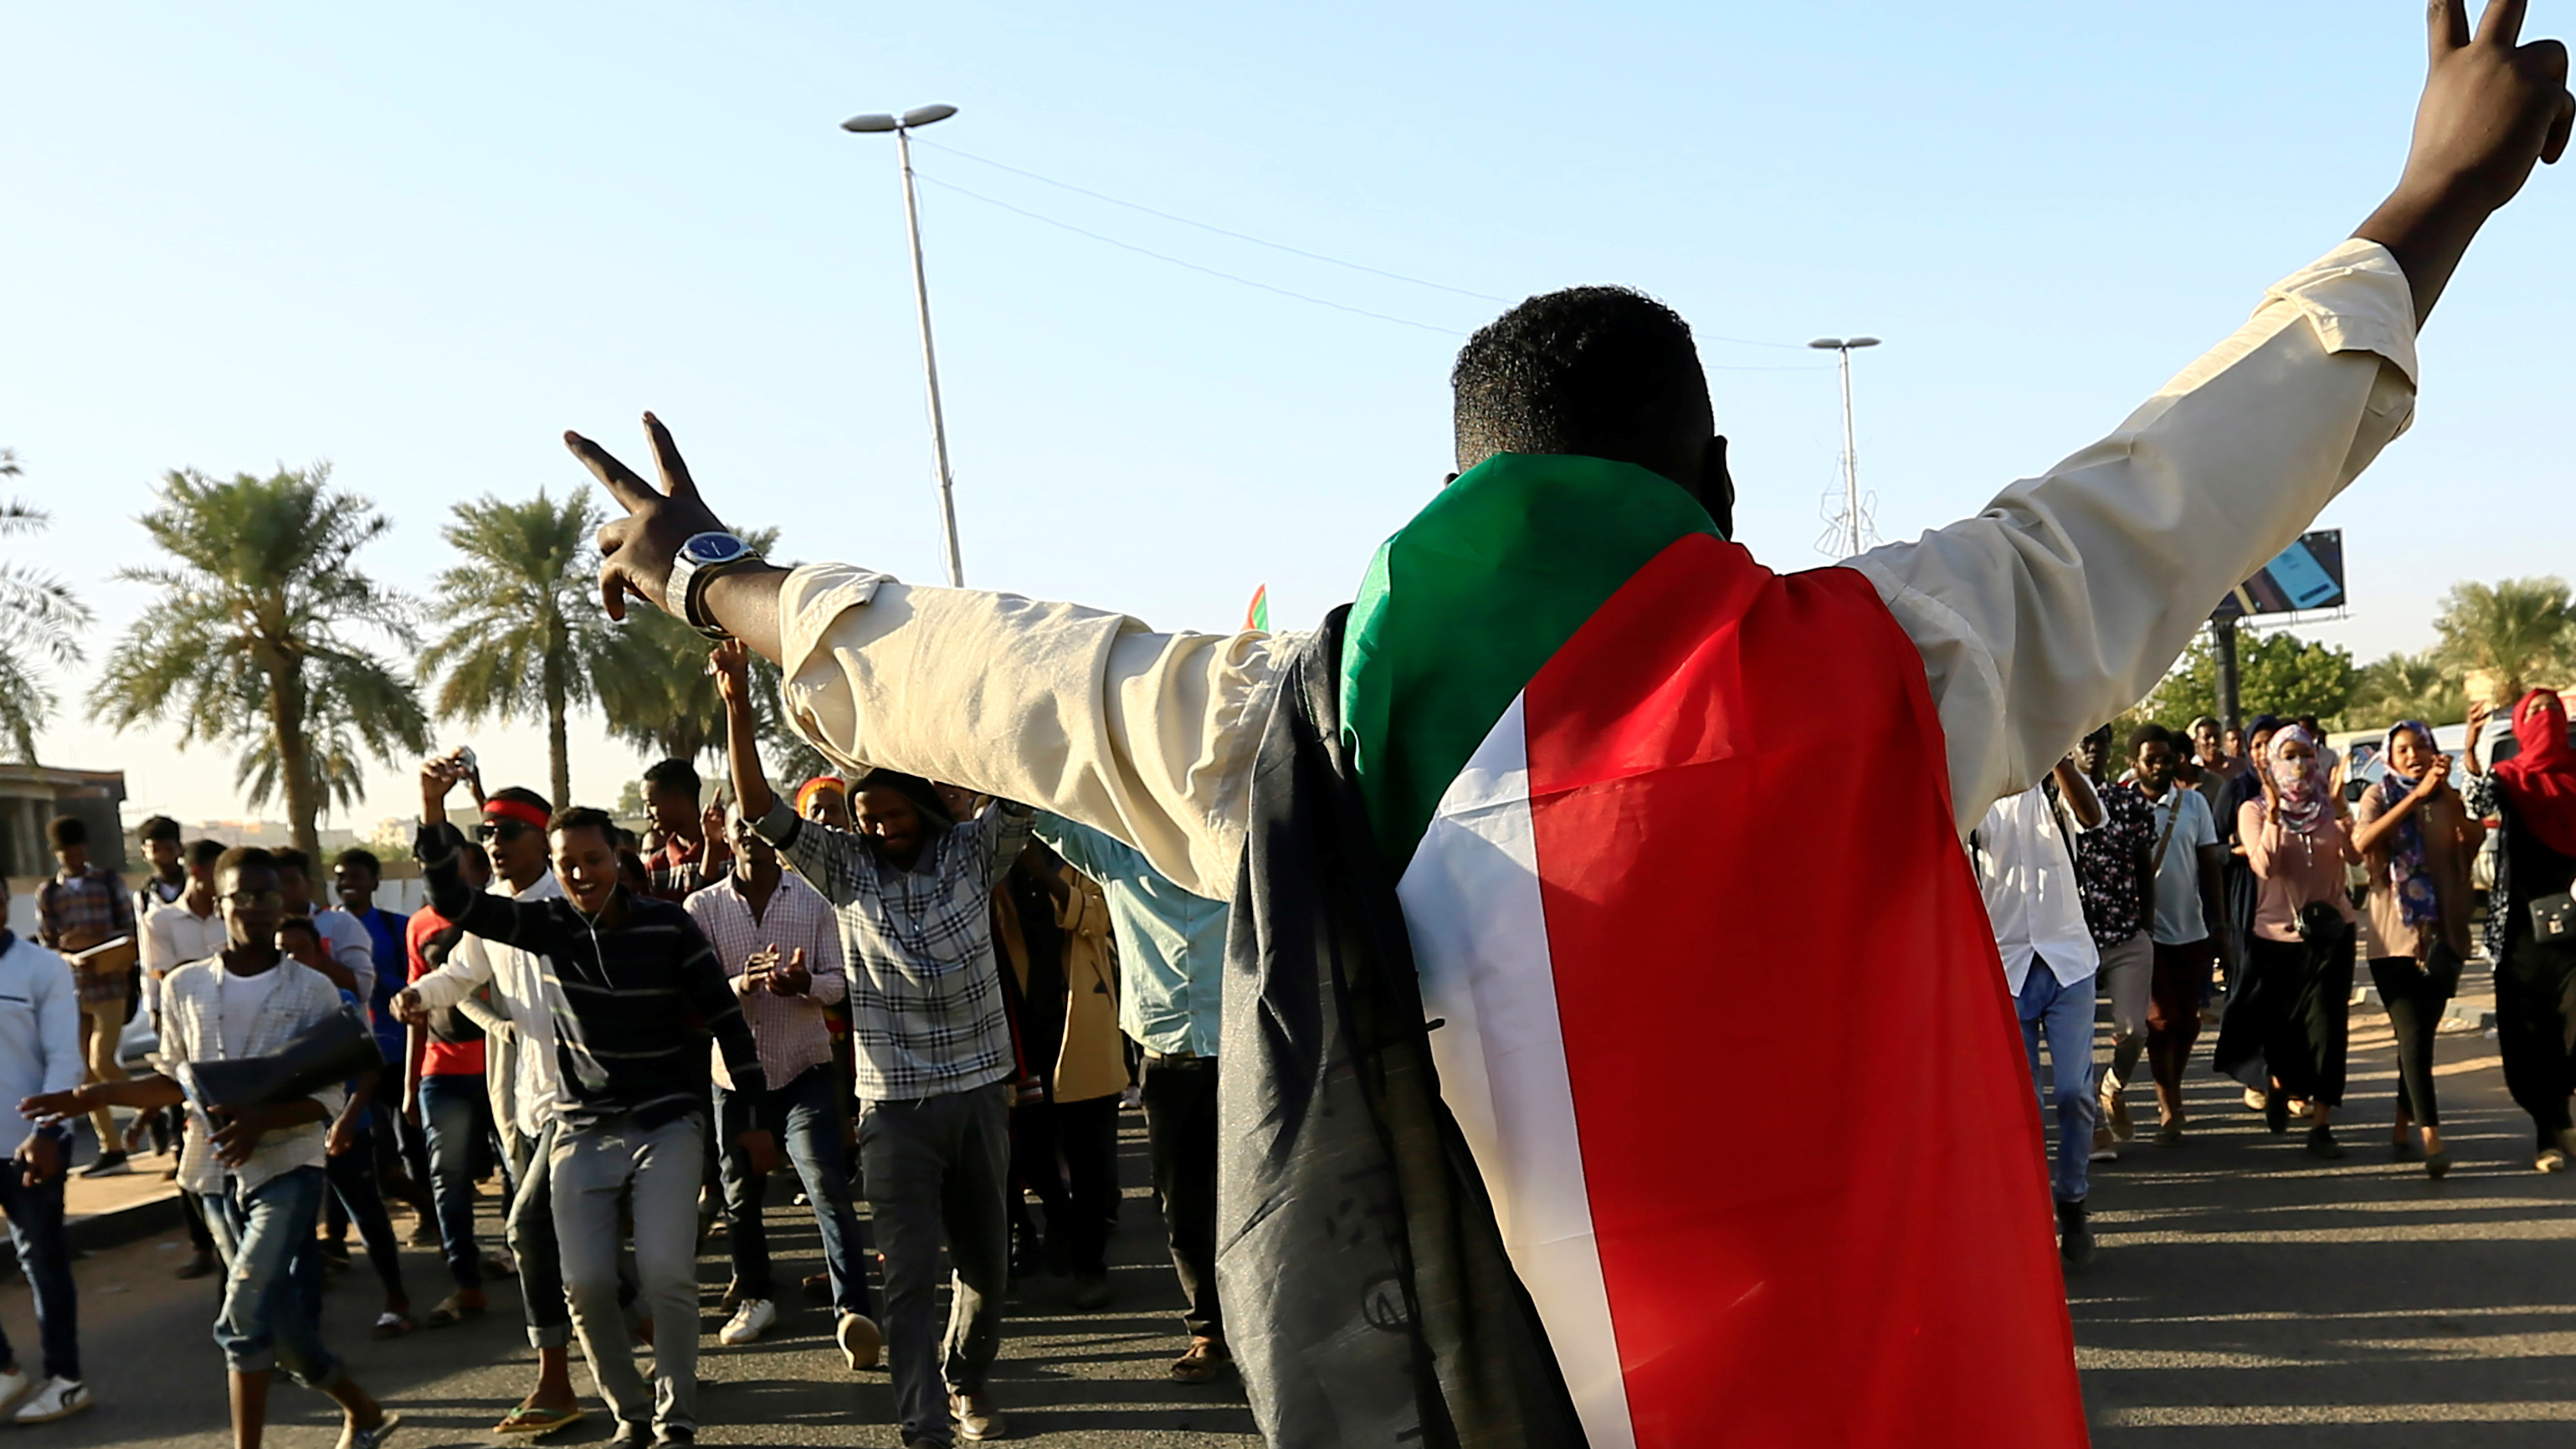 A protester holds peace sign and wears Sudanese flag across his shoulders